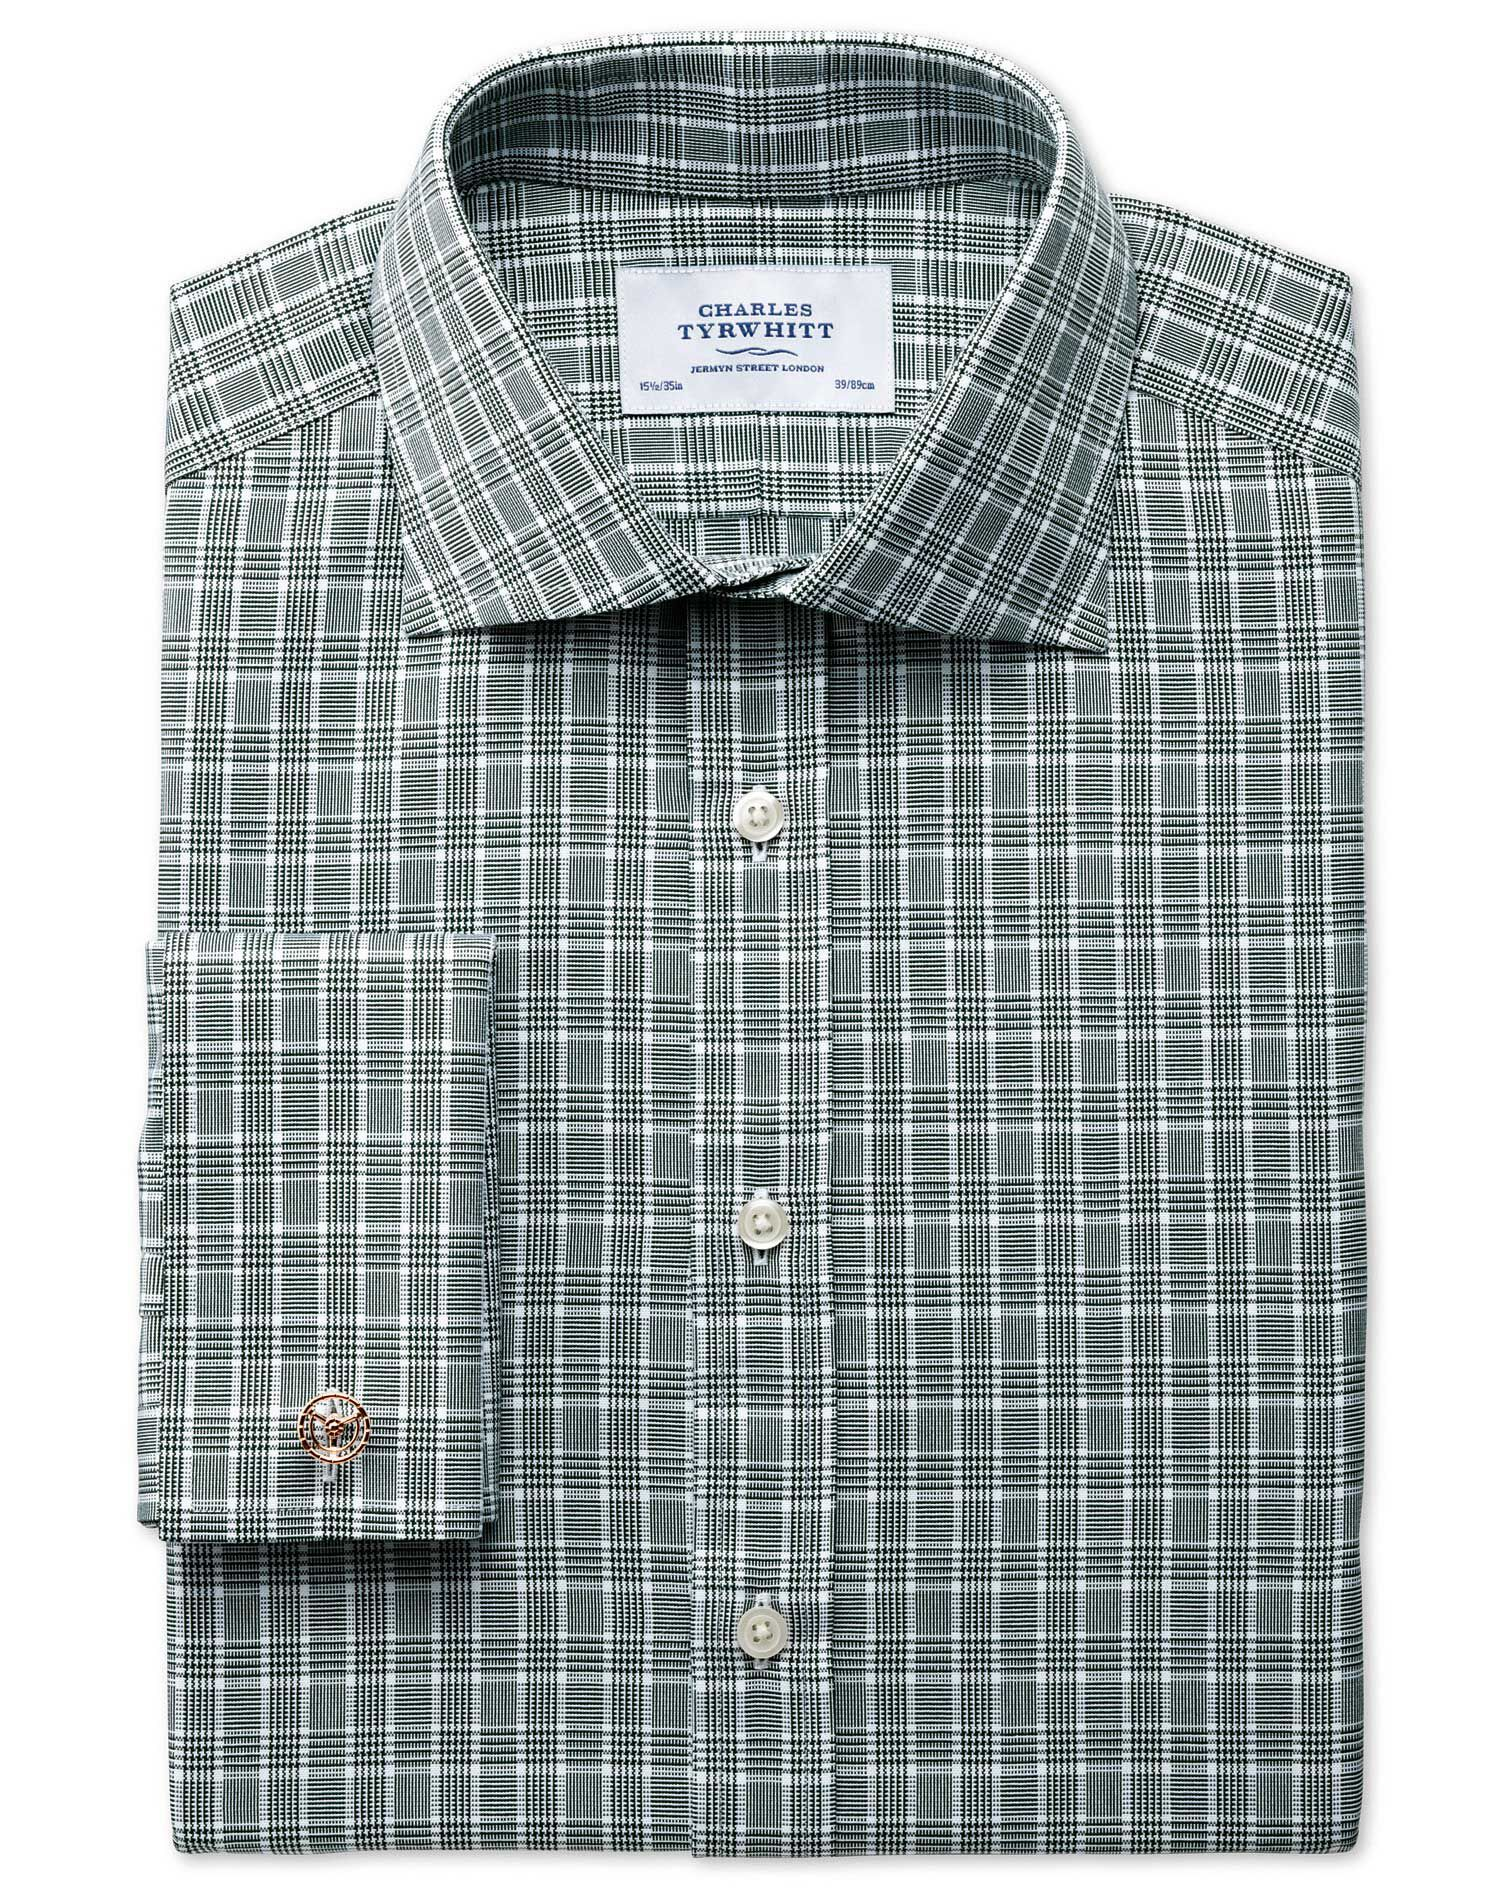 Extra Slim Fit Prince Of Wales Green Cotton Formal Shirt Double Cuff Size 16/34 by Charles Tyrwhitt